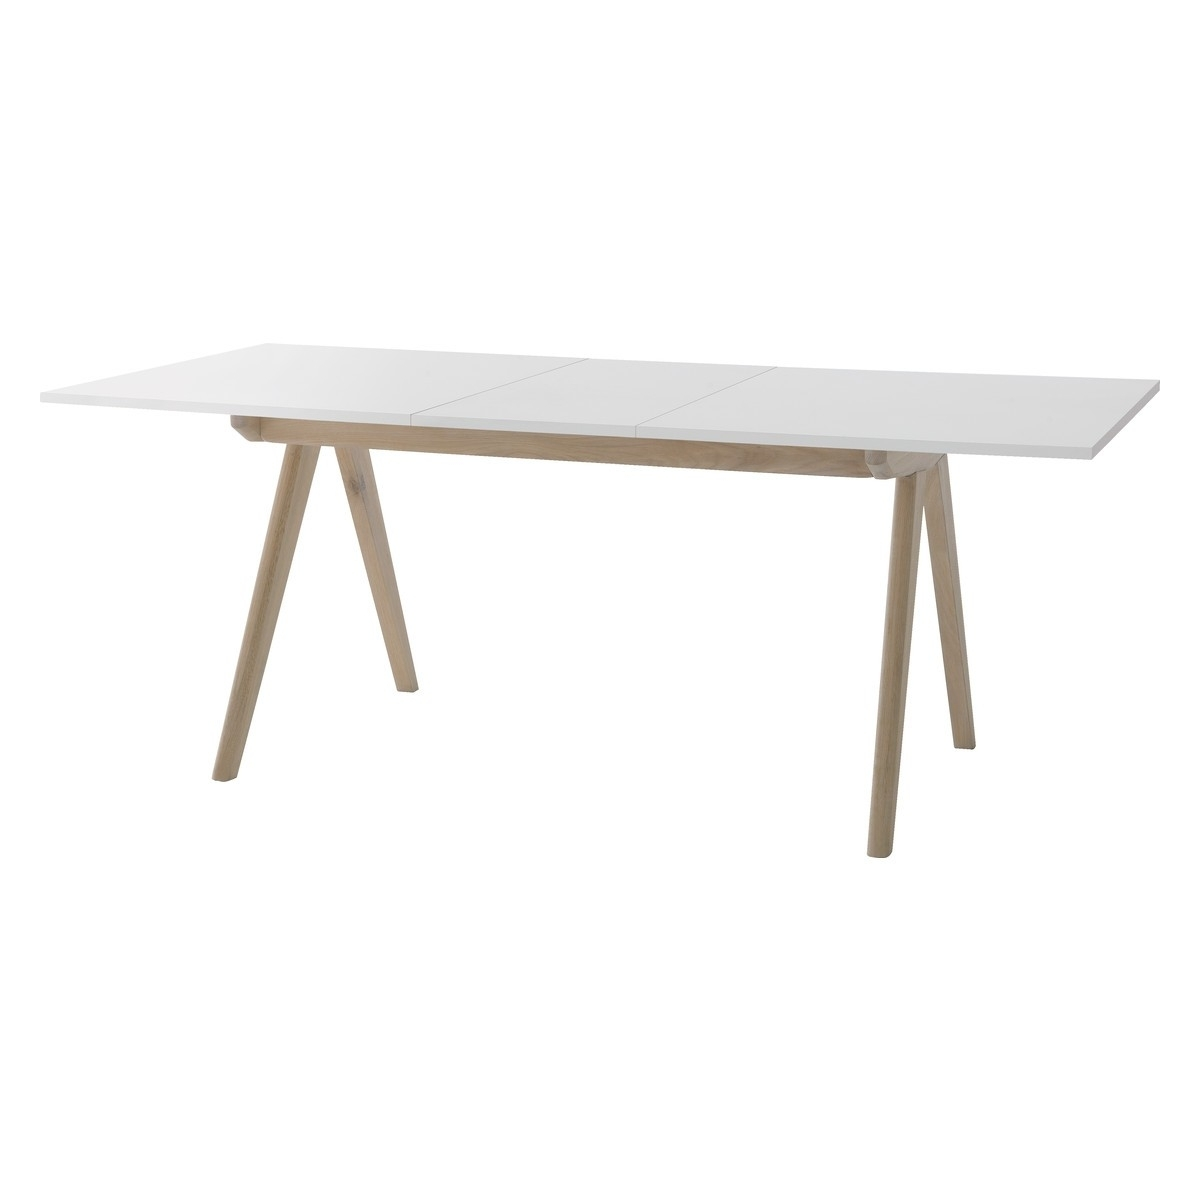 Well Liked Extending Dining Table With 10 Seats Regarding Jerry 4 8 Seat White Extending Dining Table (View 5 of 25)